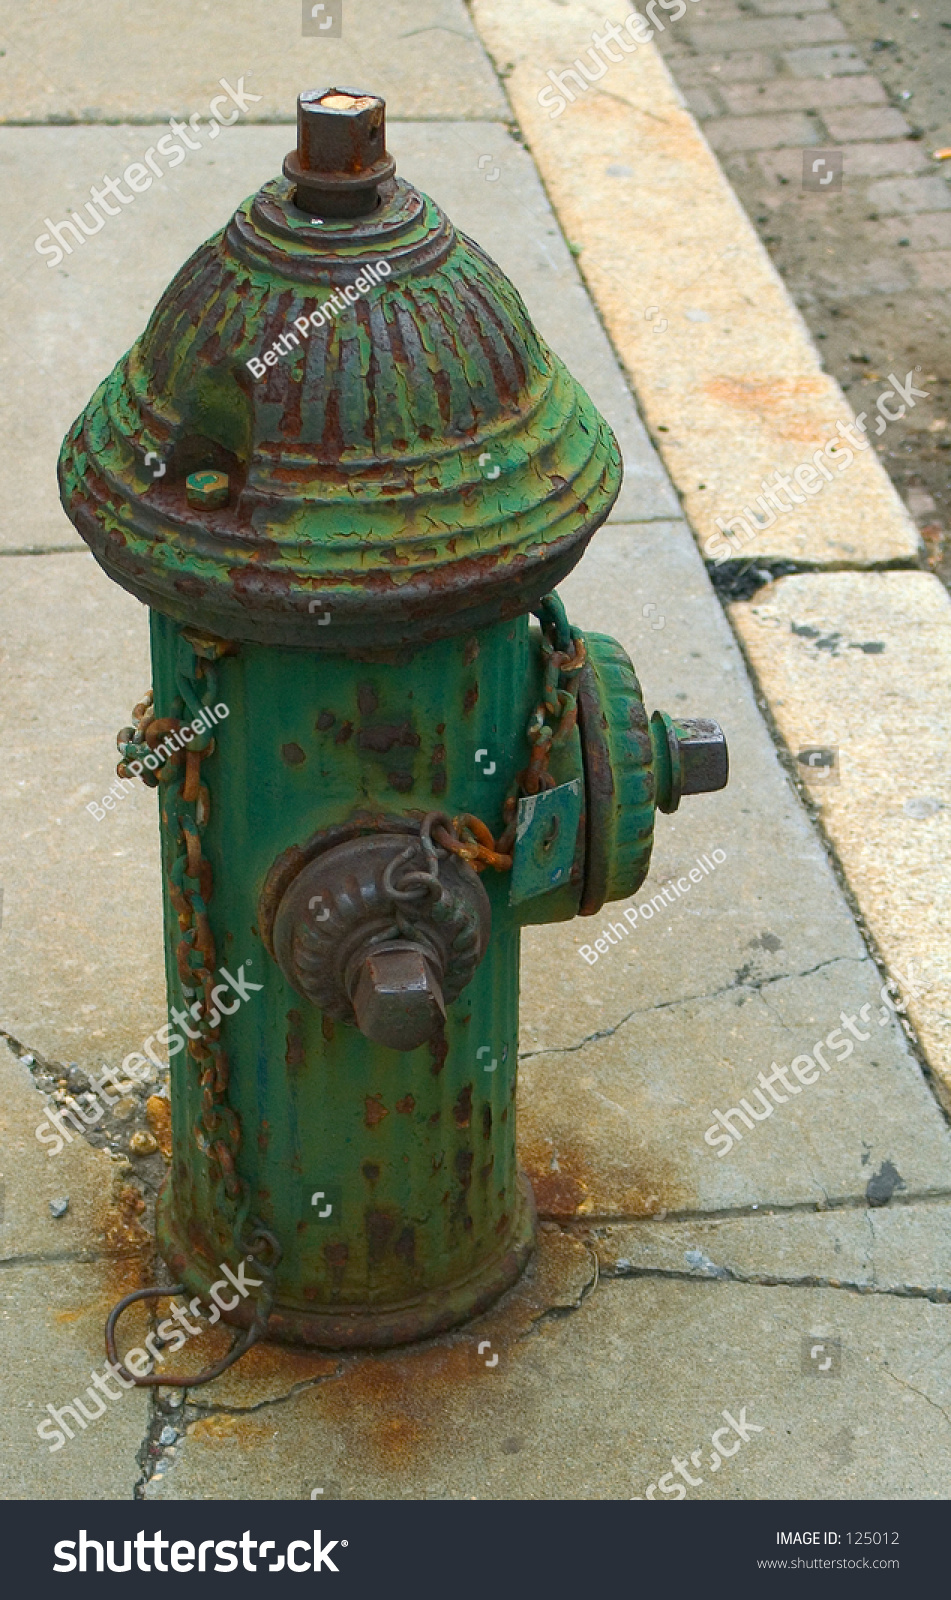 Green Paint Fire Hydrant